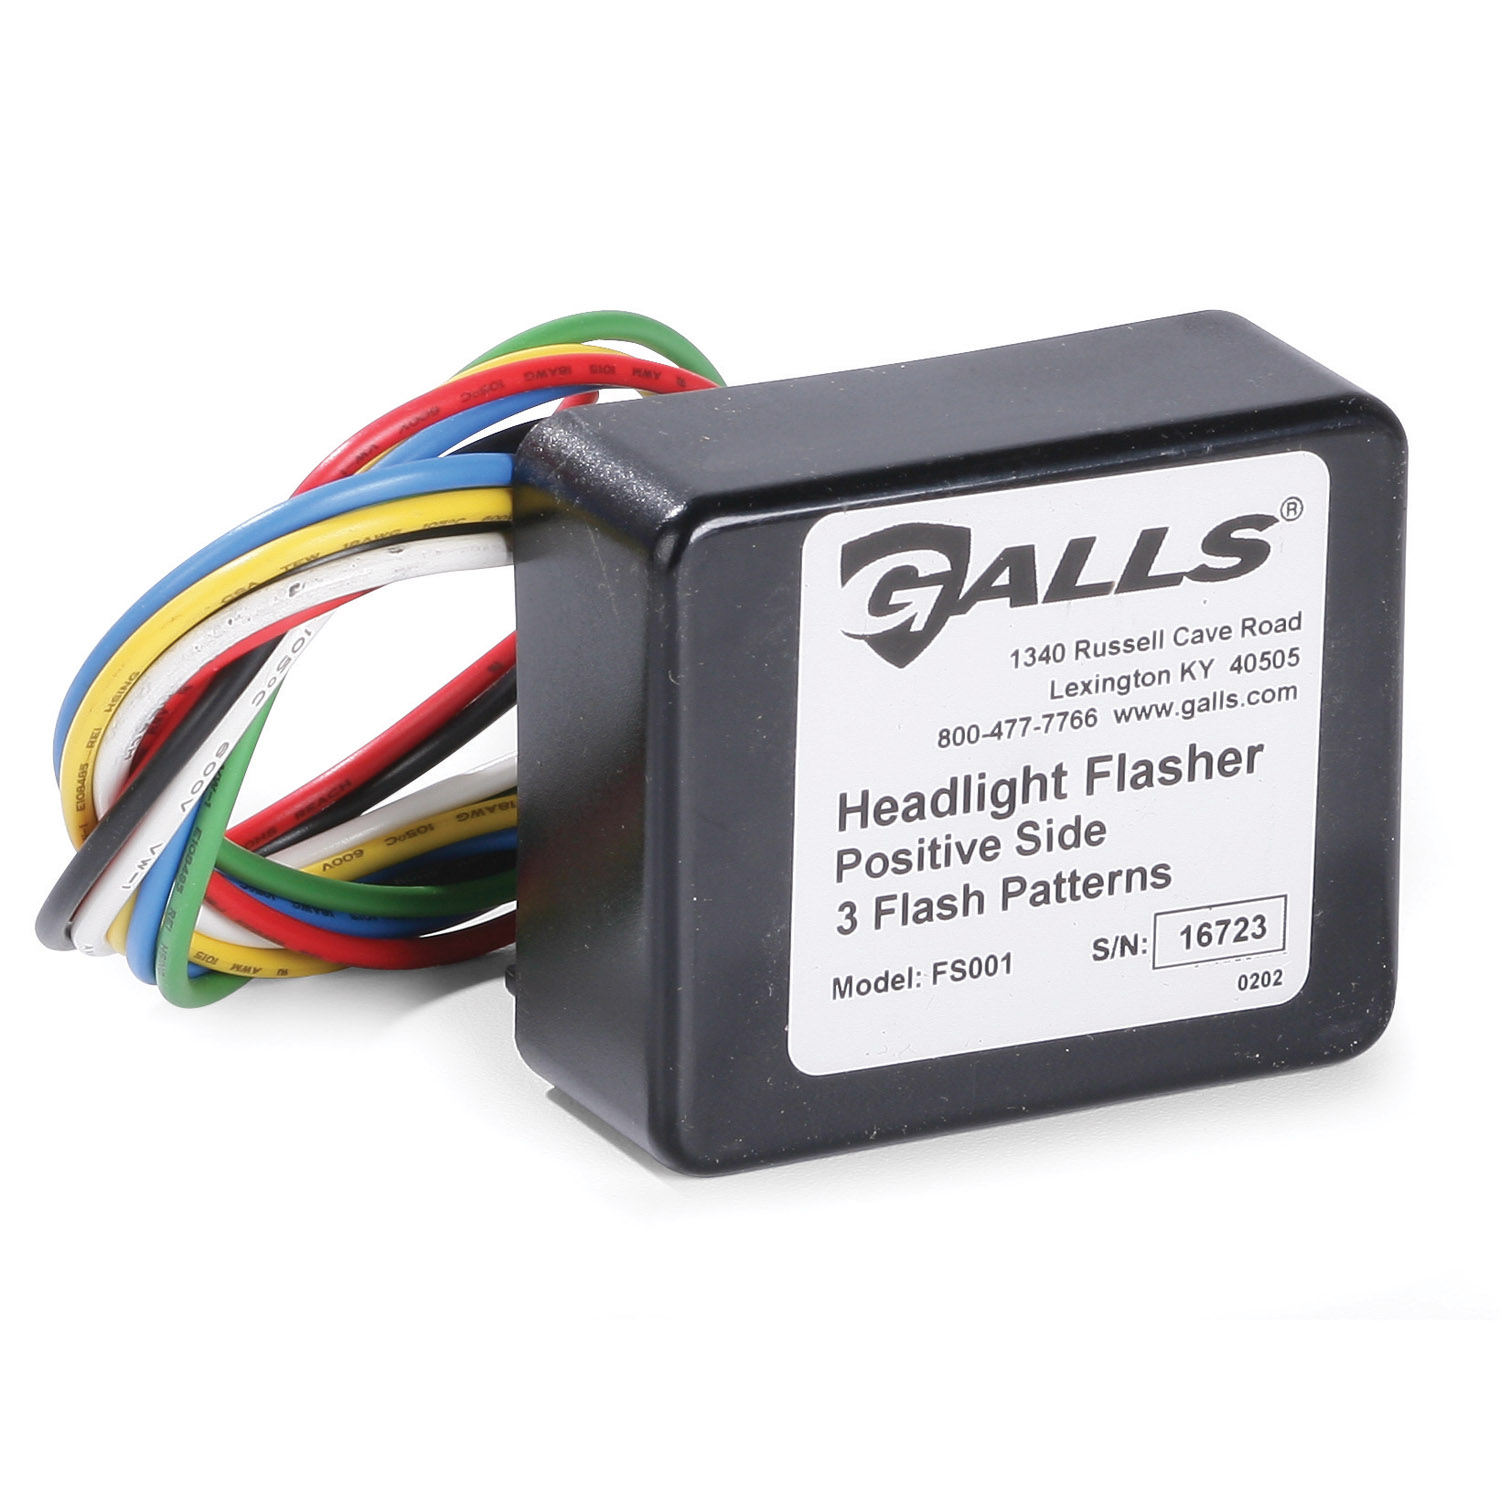 Galls Headlight Flasher Wiring Diagram 38 Images 537 Fs001 1500 1 2004 Trailblazer Seat Electric At